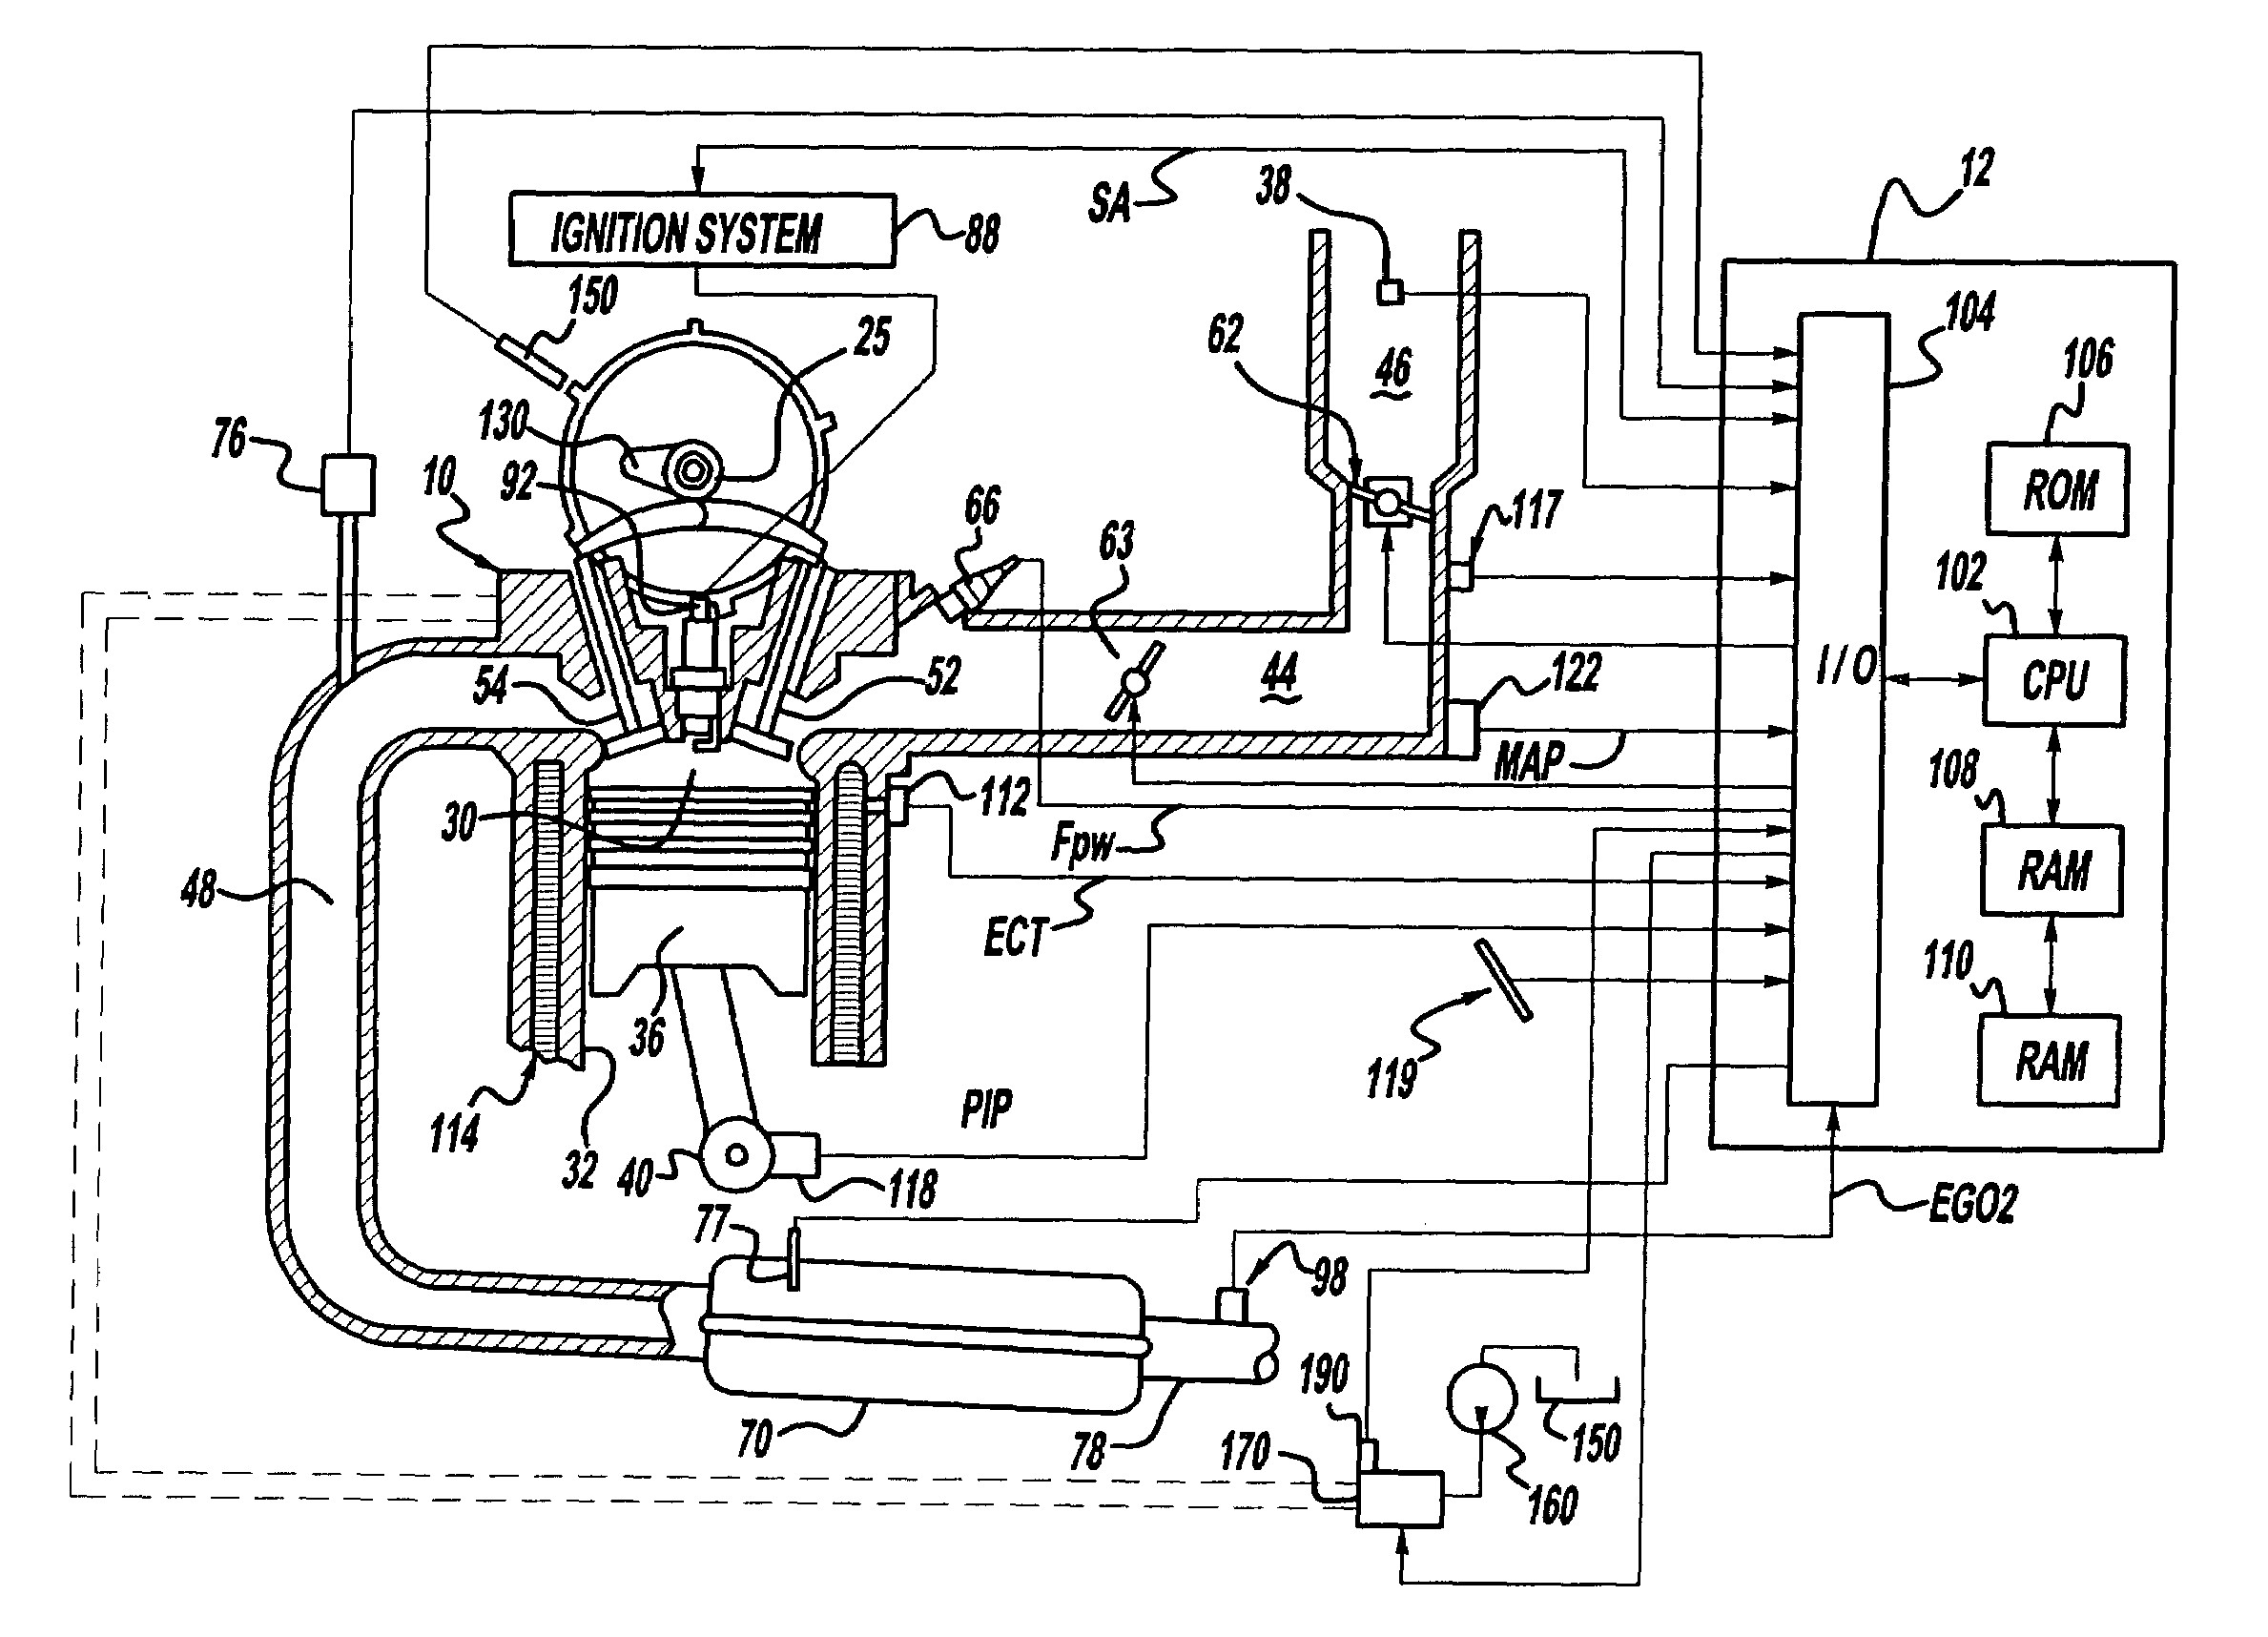 Diesel Engine Valve Timing Diagram Patent Us Controlling An Engine with Adjustable Intake Of Diesel Engine Valve Timing Diagram Energies Free Full Text